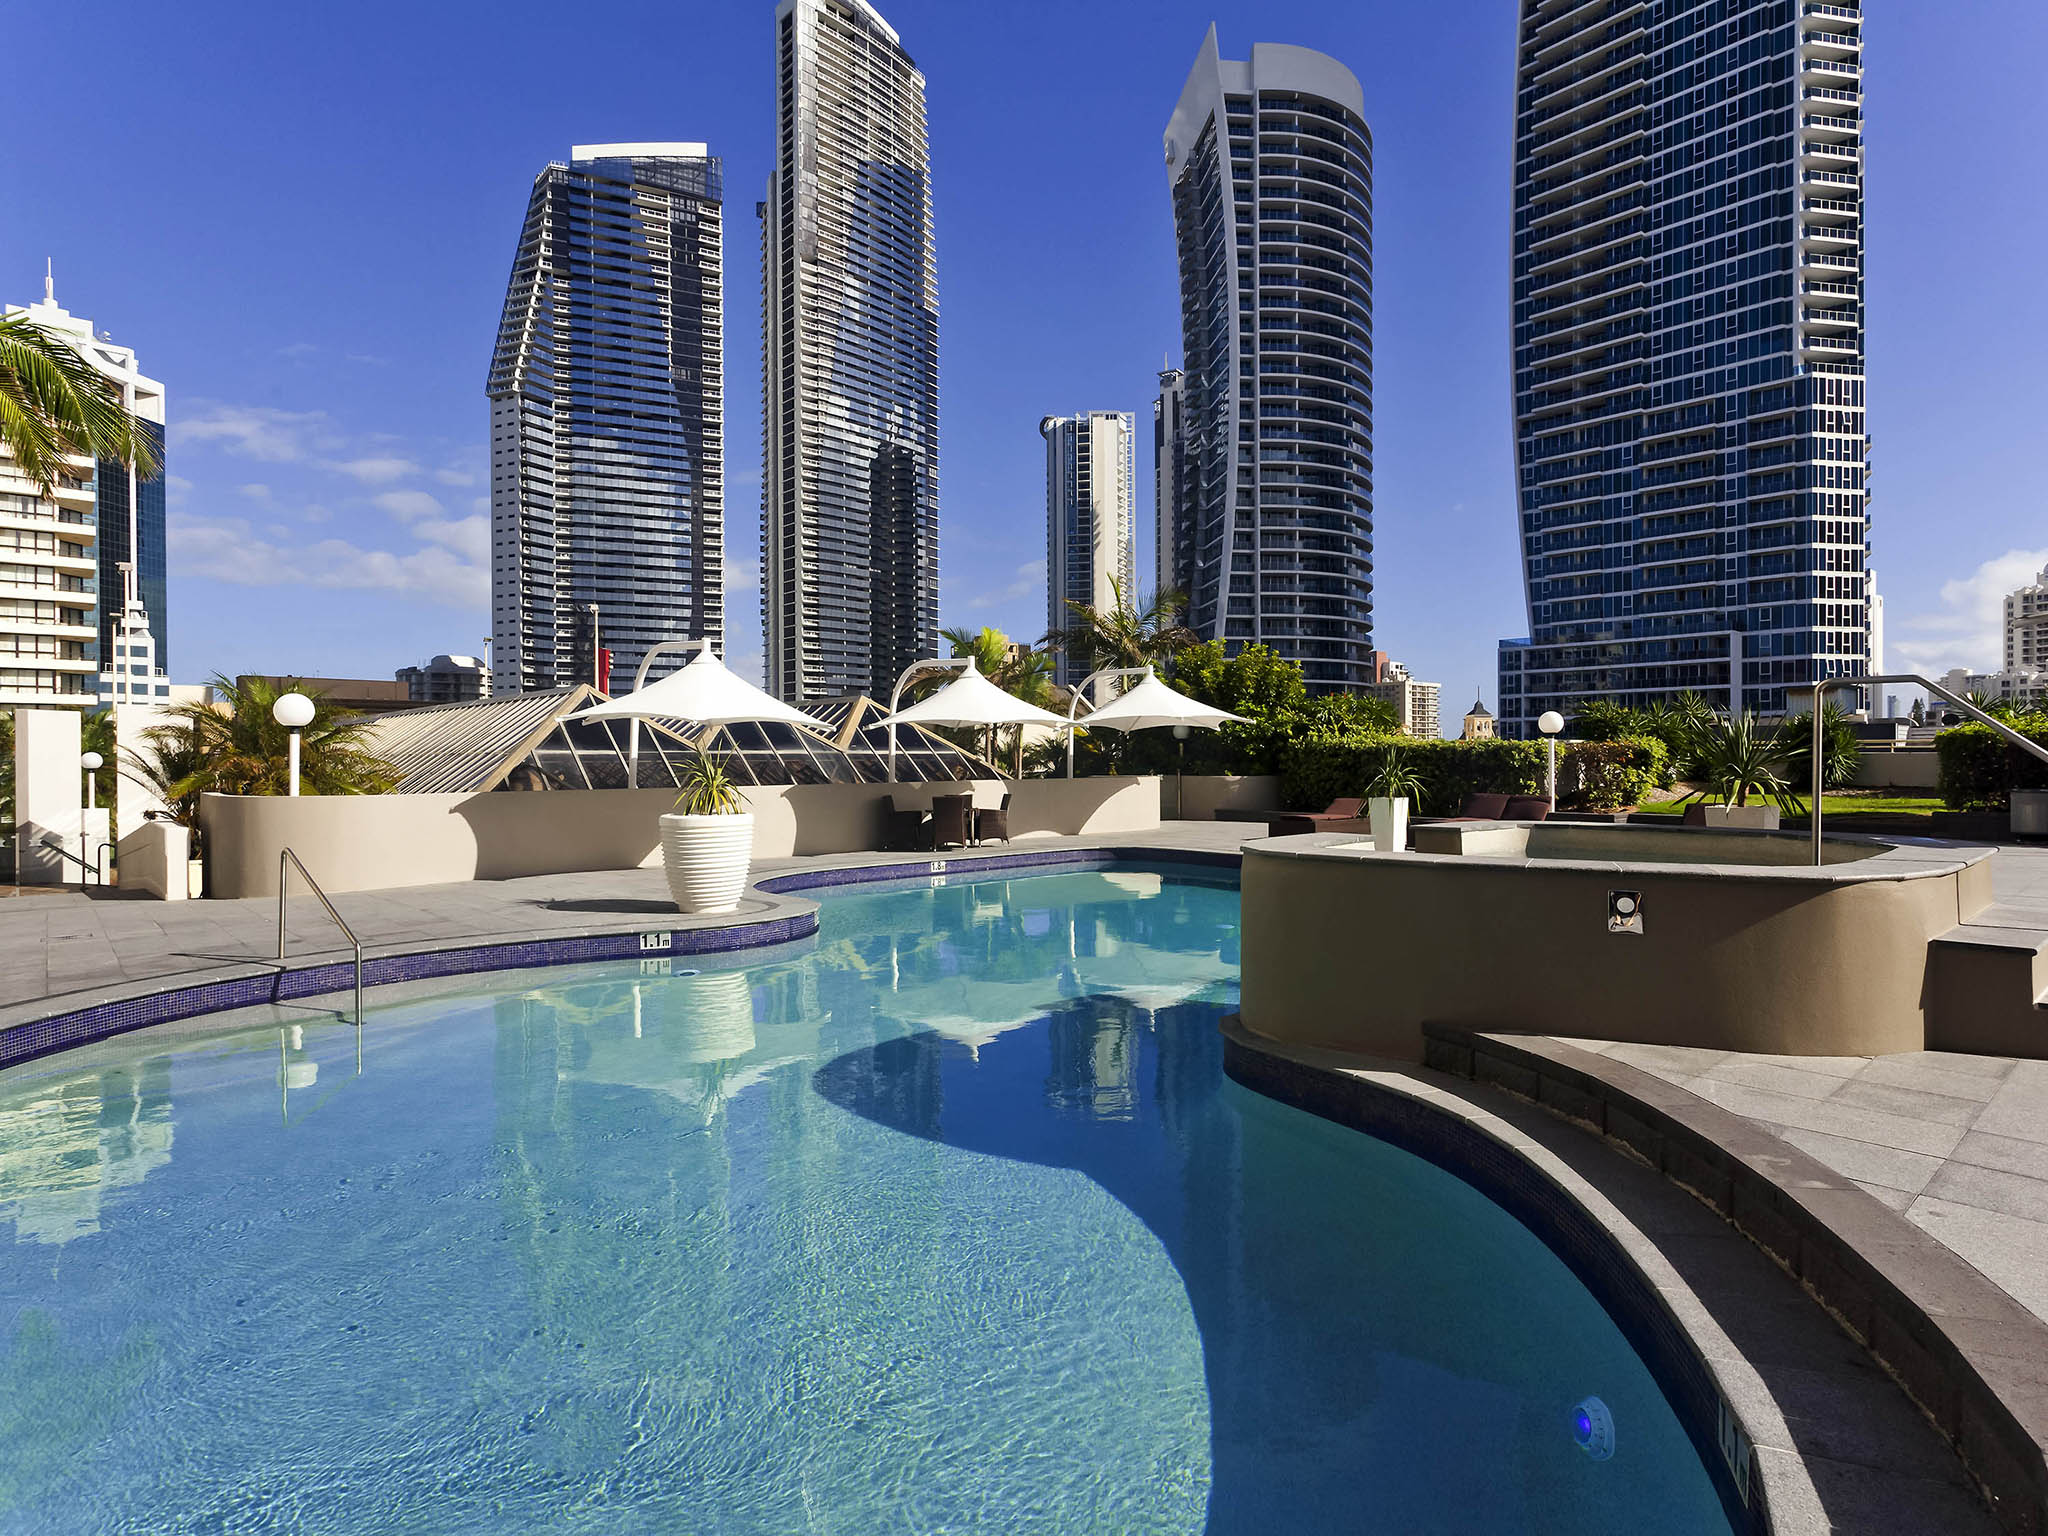 Club r surfers paradise reviews